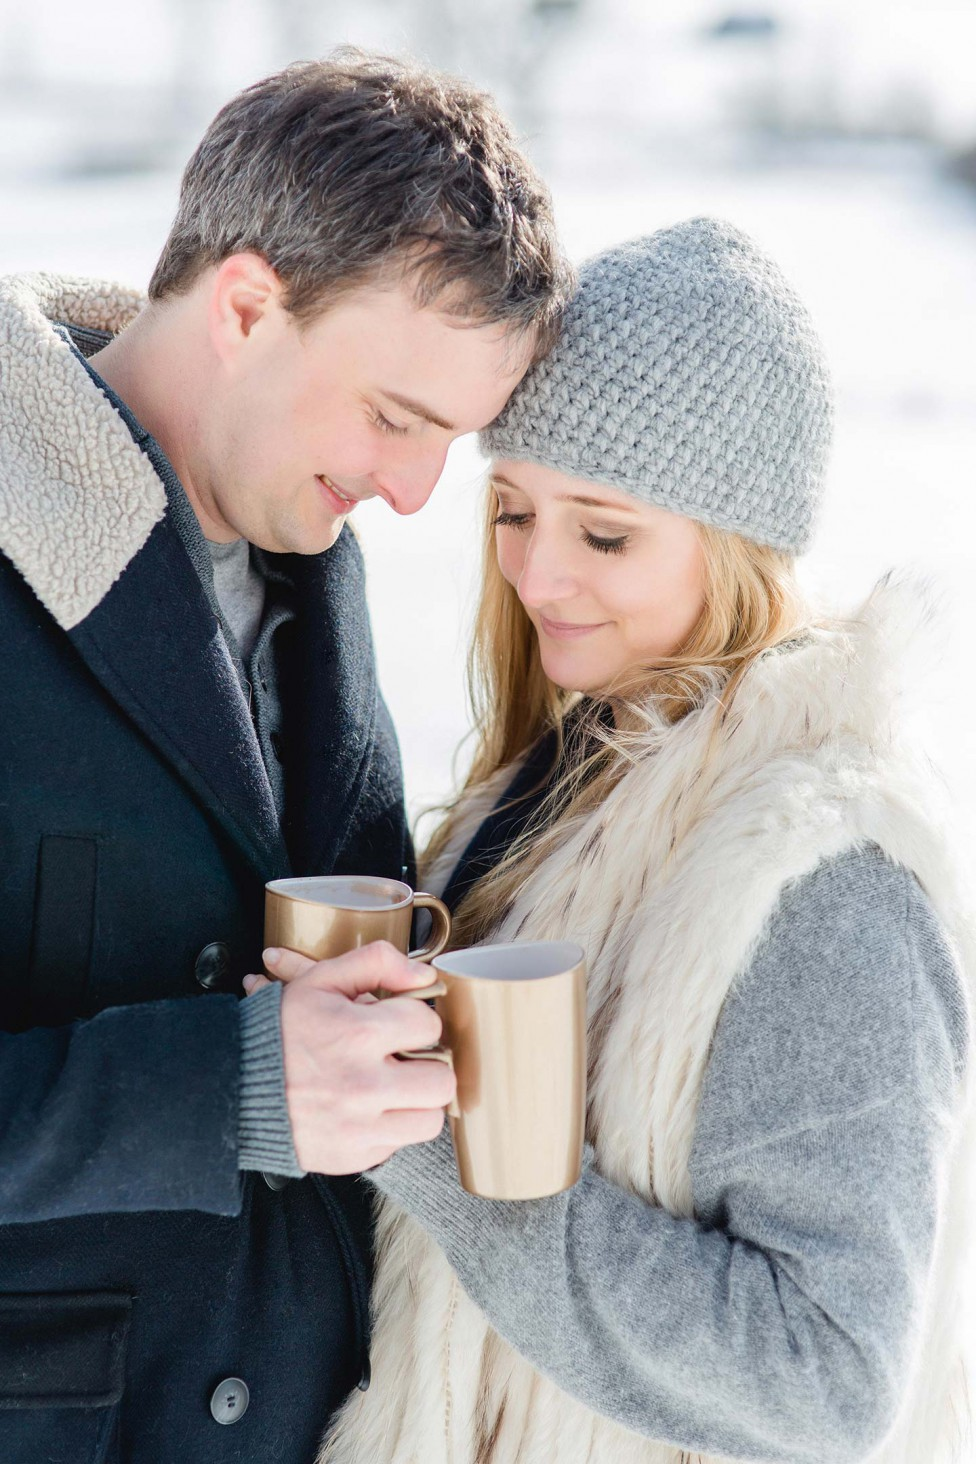 Winterliches Engagement-Shooting in Blau & Gold